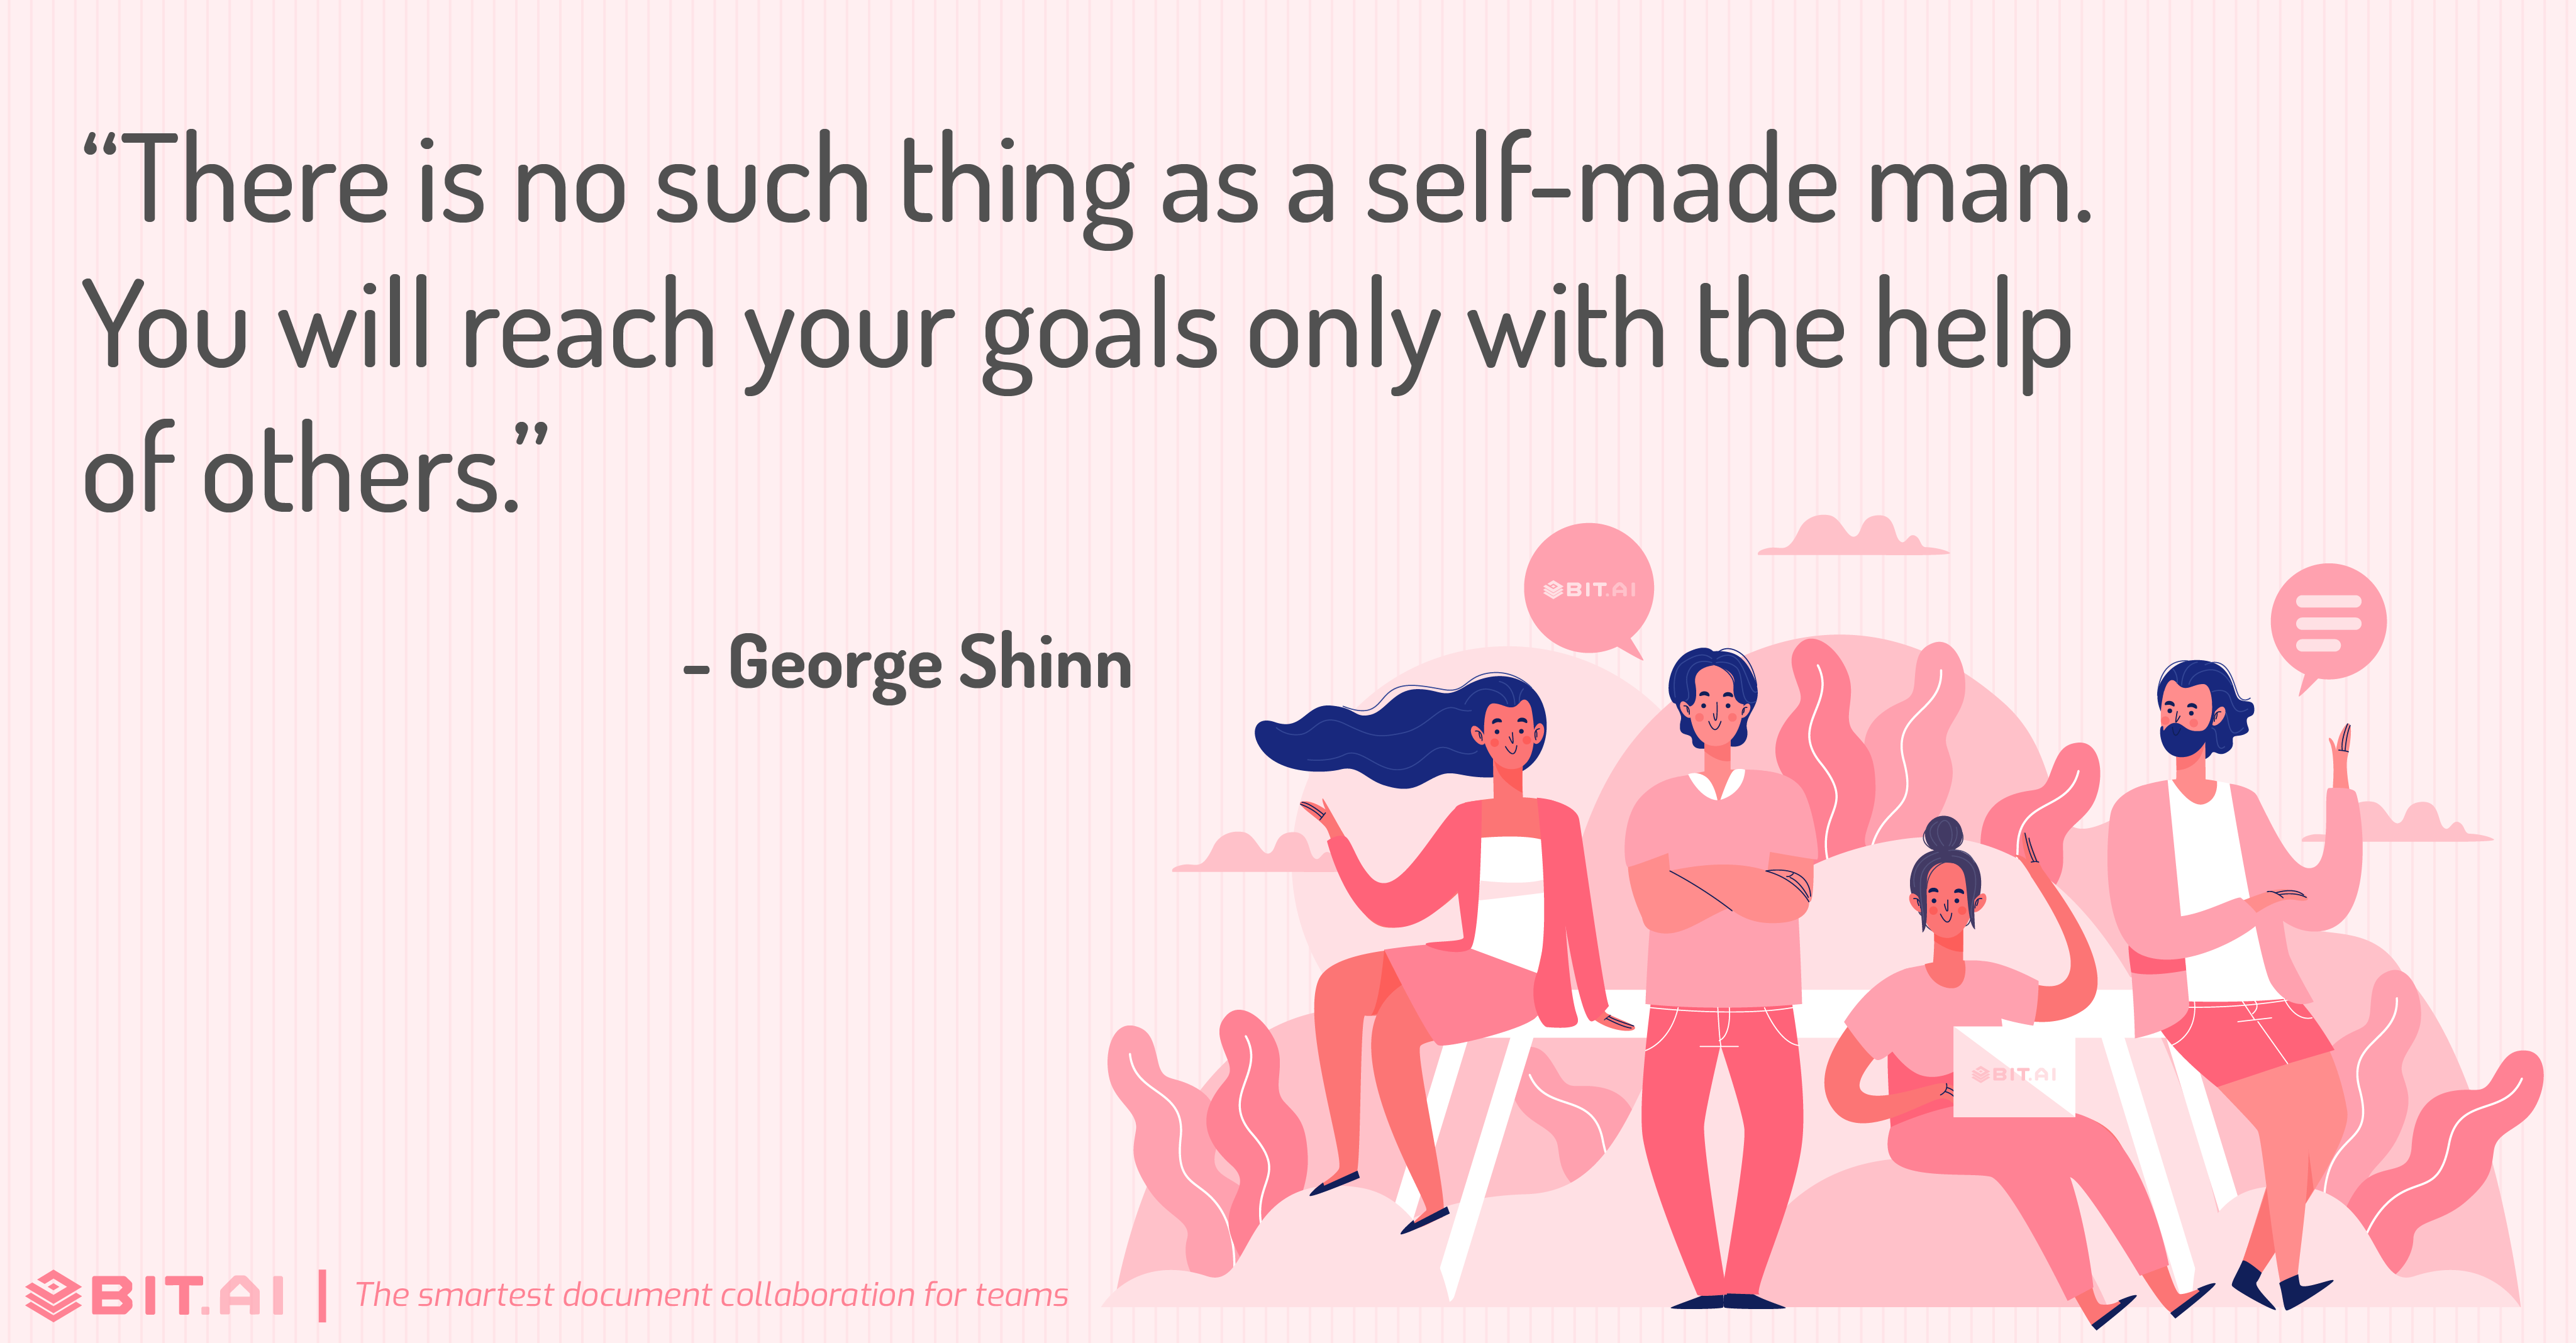 """There is no such thing as a self-made man. You will reach your goals only with the help of others."" - George Shinn"